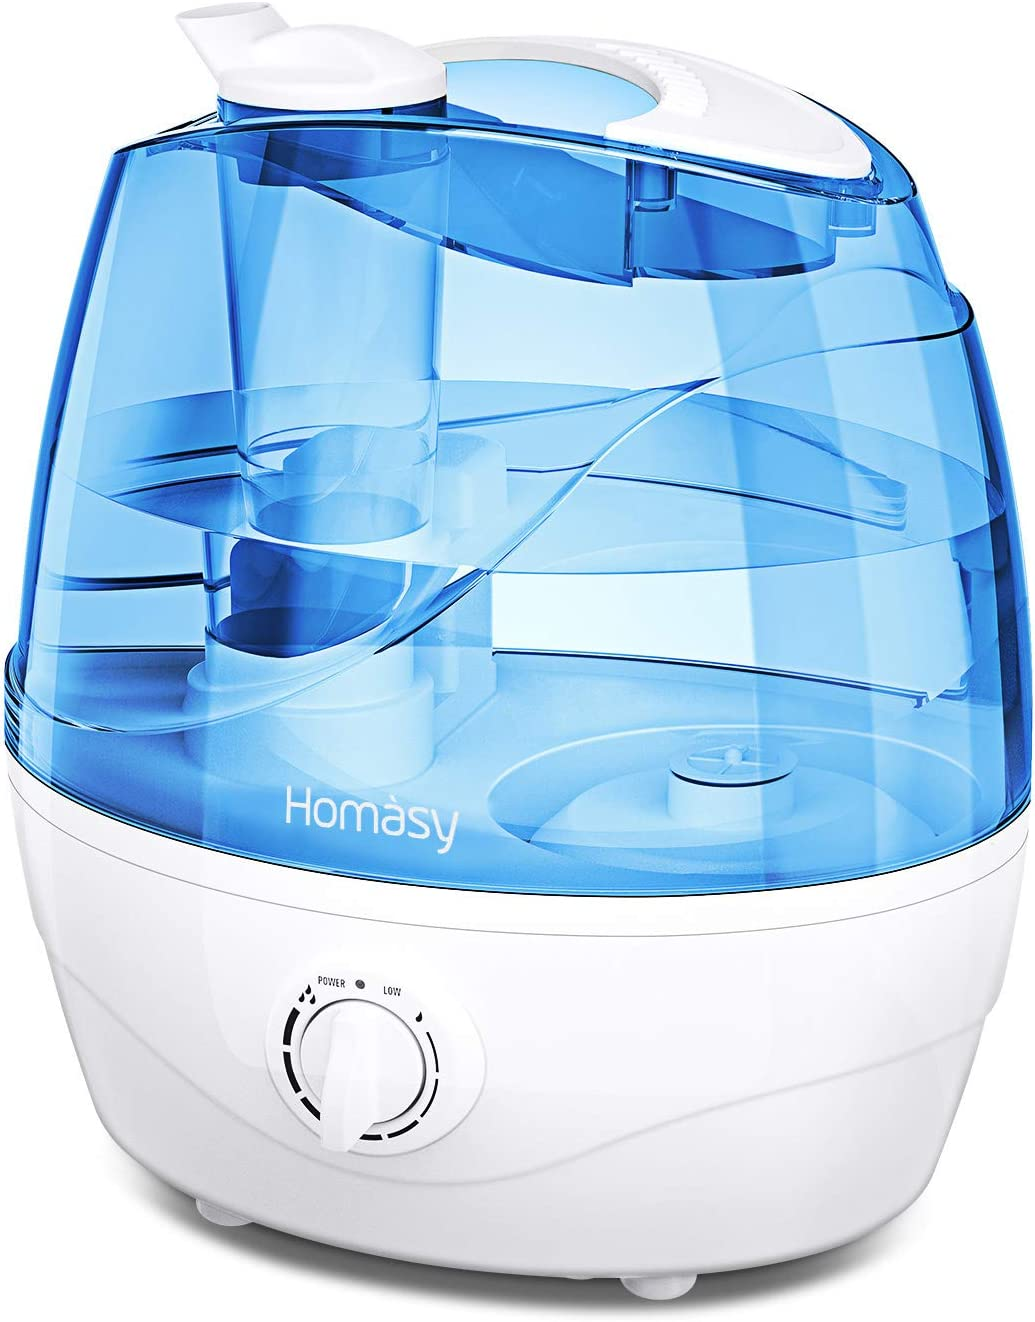 Homasy Cool Mist Humidifiers, Quiet Baby Humidifiers for Bedroom, Last Up to 25 Hours, Easy to Clean, Ultrasonic Humidifier with Precise Mist Control, Auto Shut-Off, Anti-Slip Handle